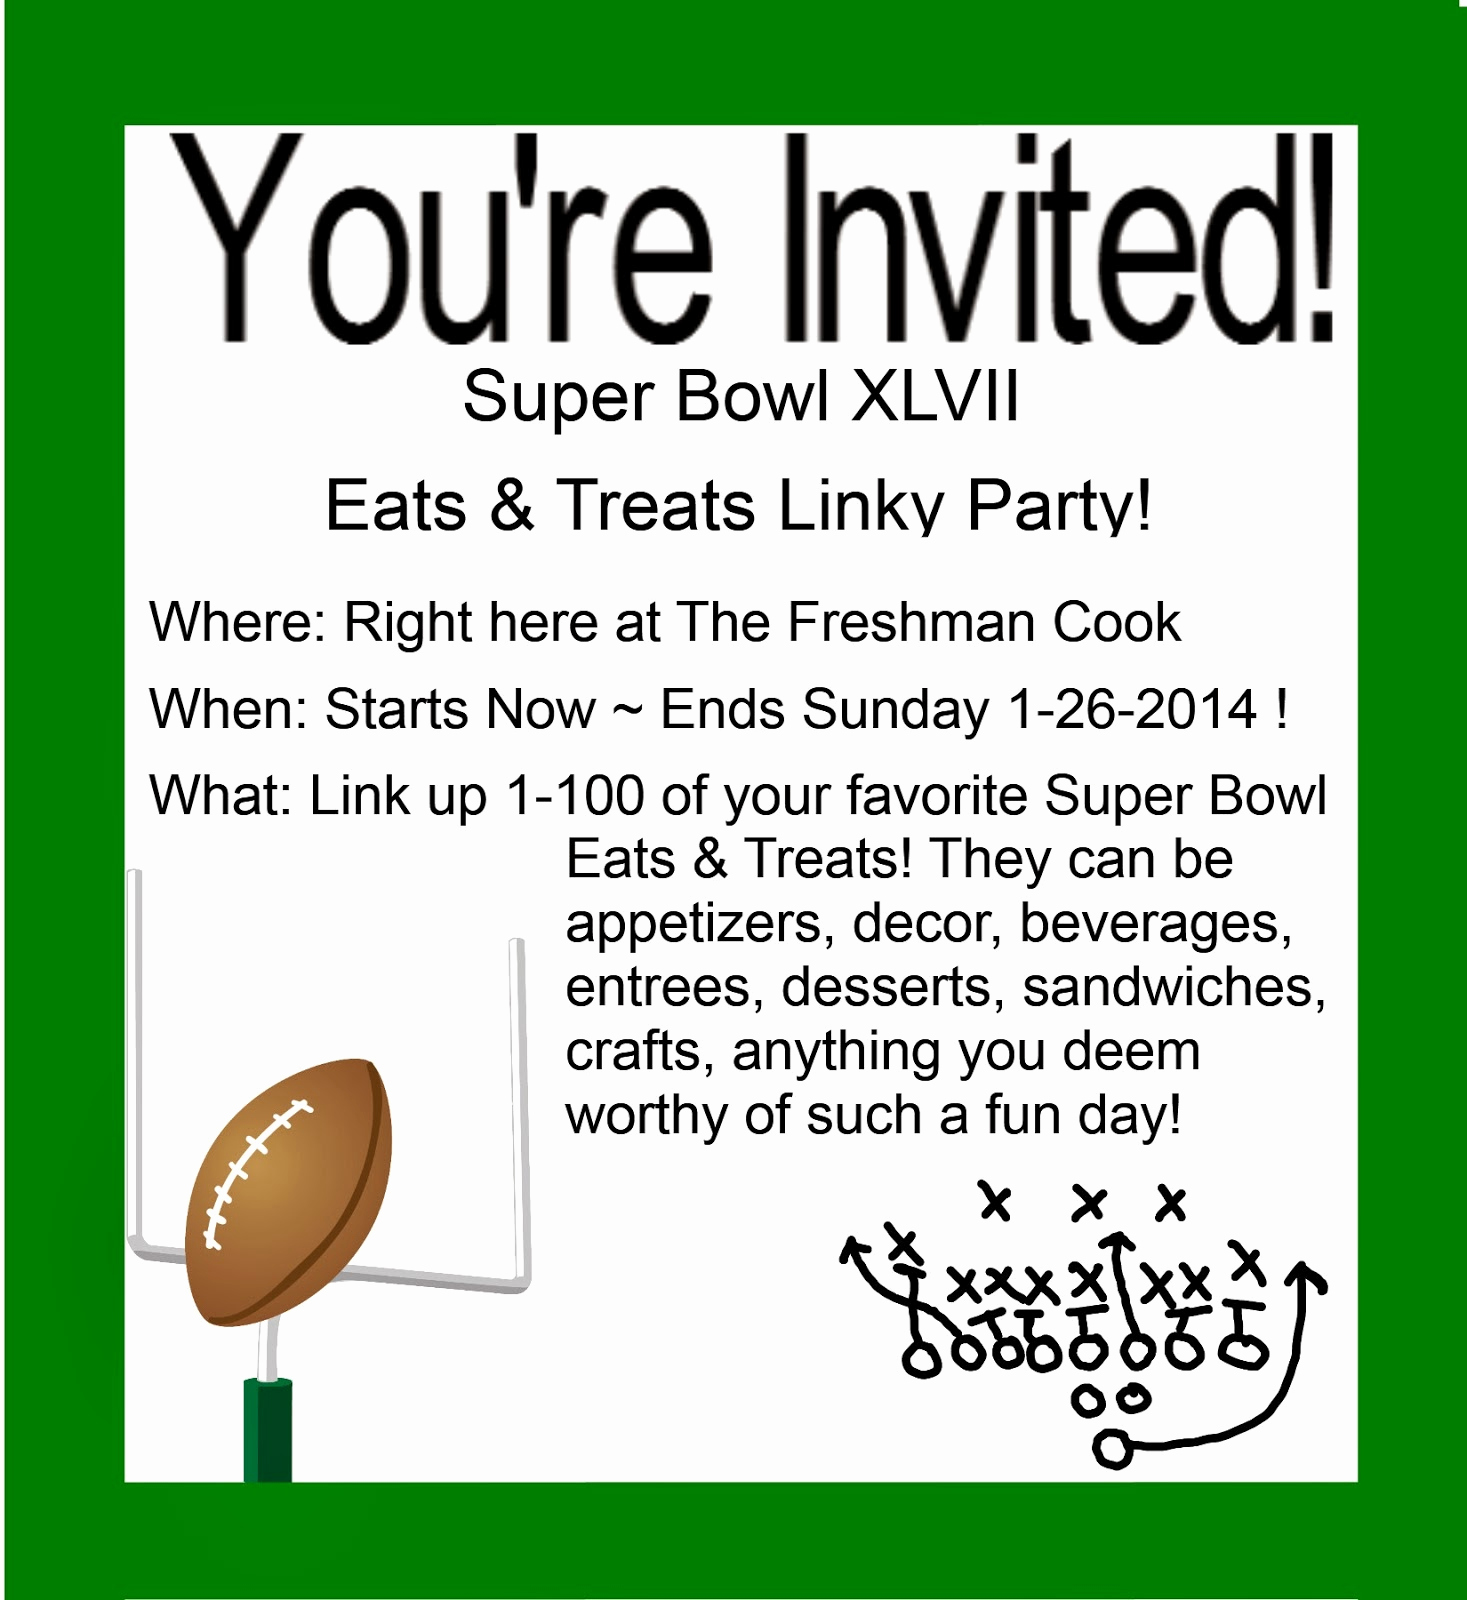 Super Bowl Invitation Template Best Of the Freshman Cook Super Bowl Linky Party